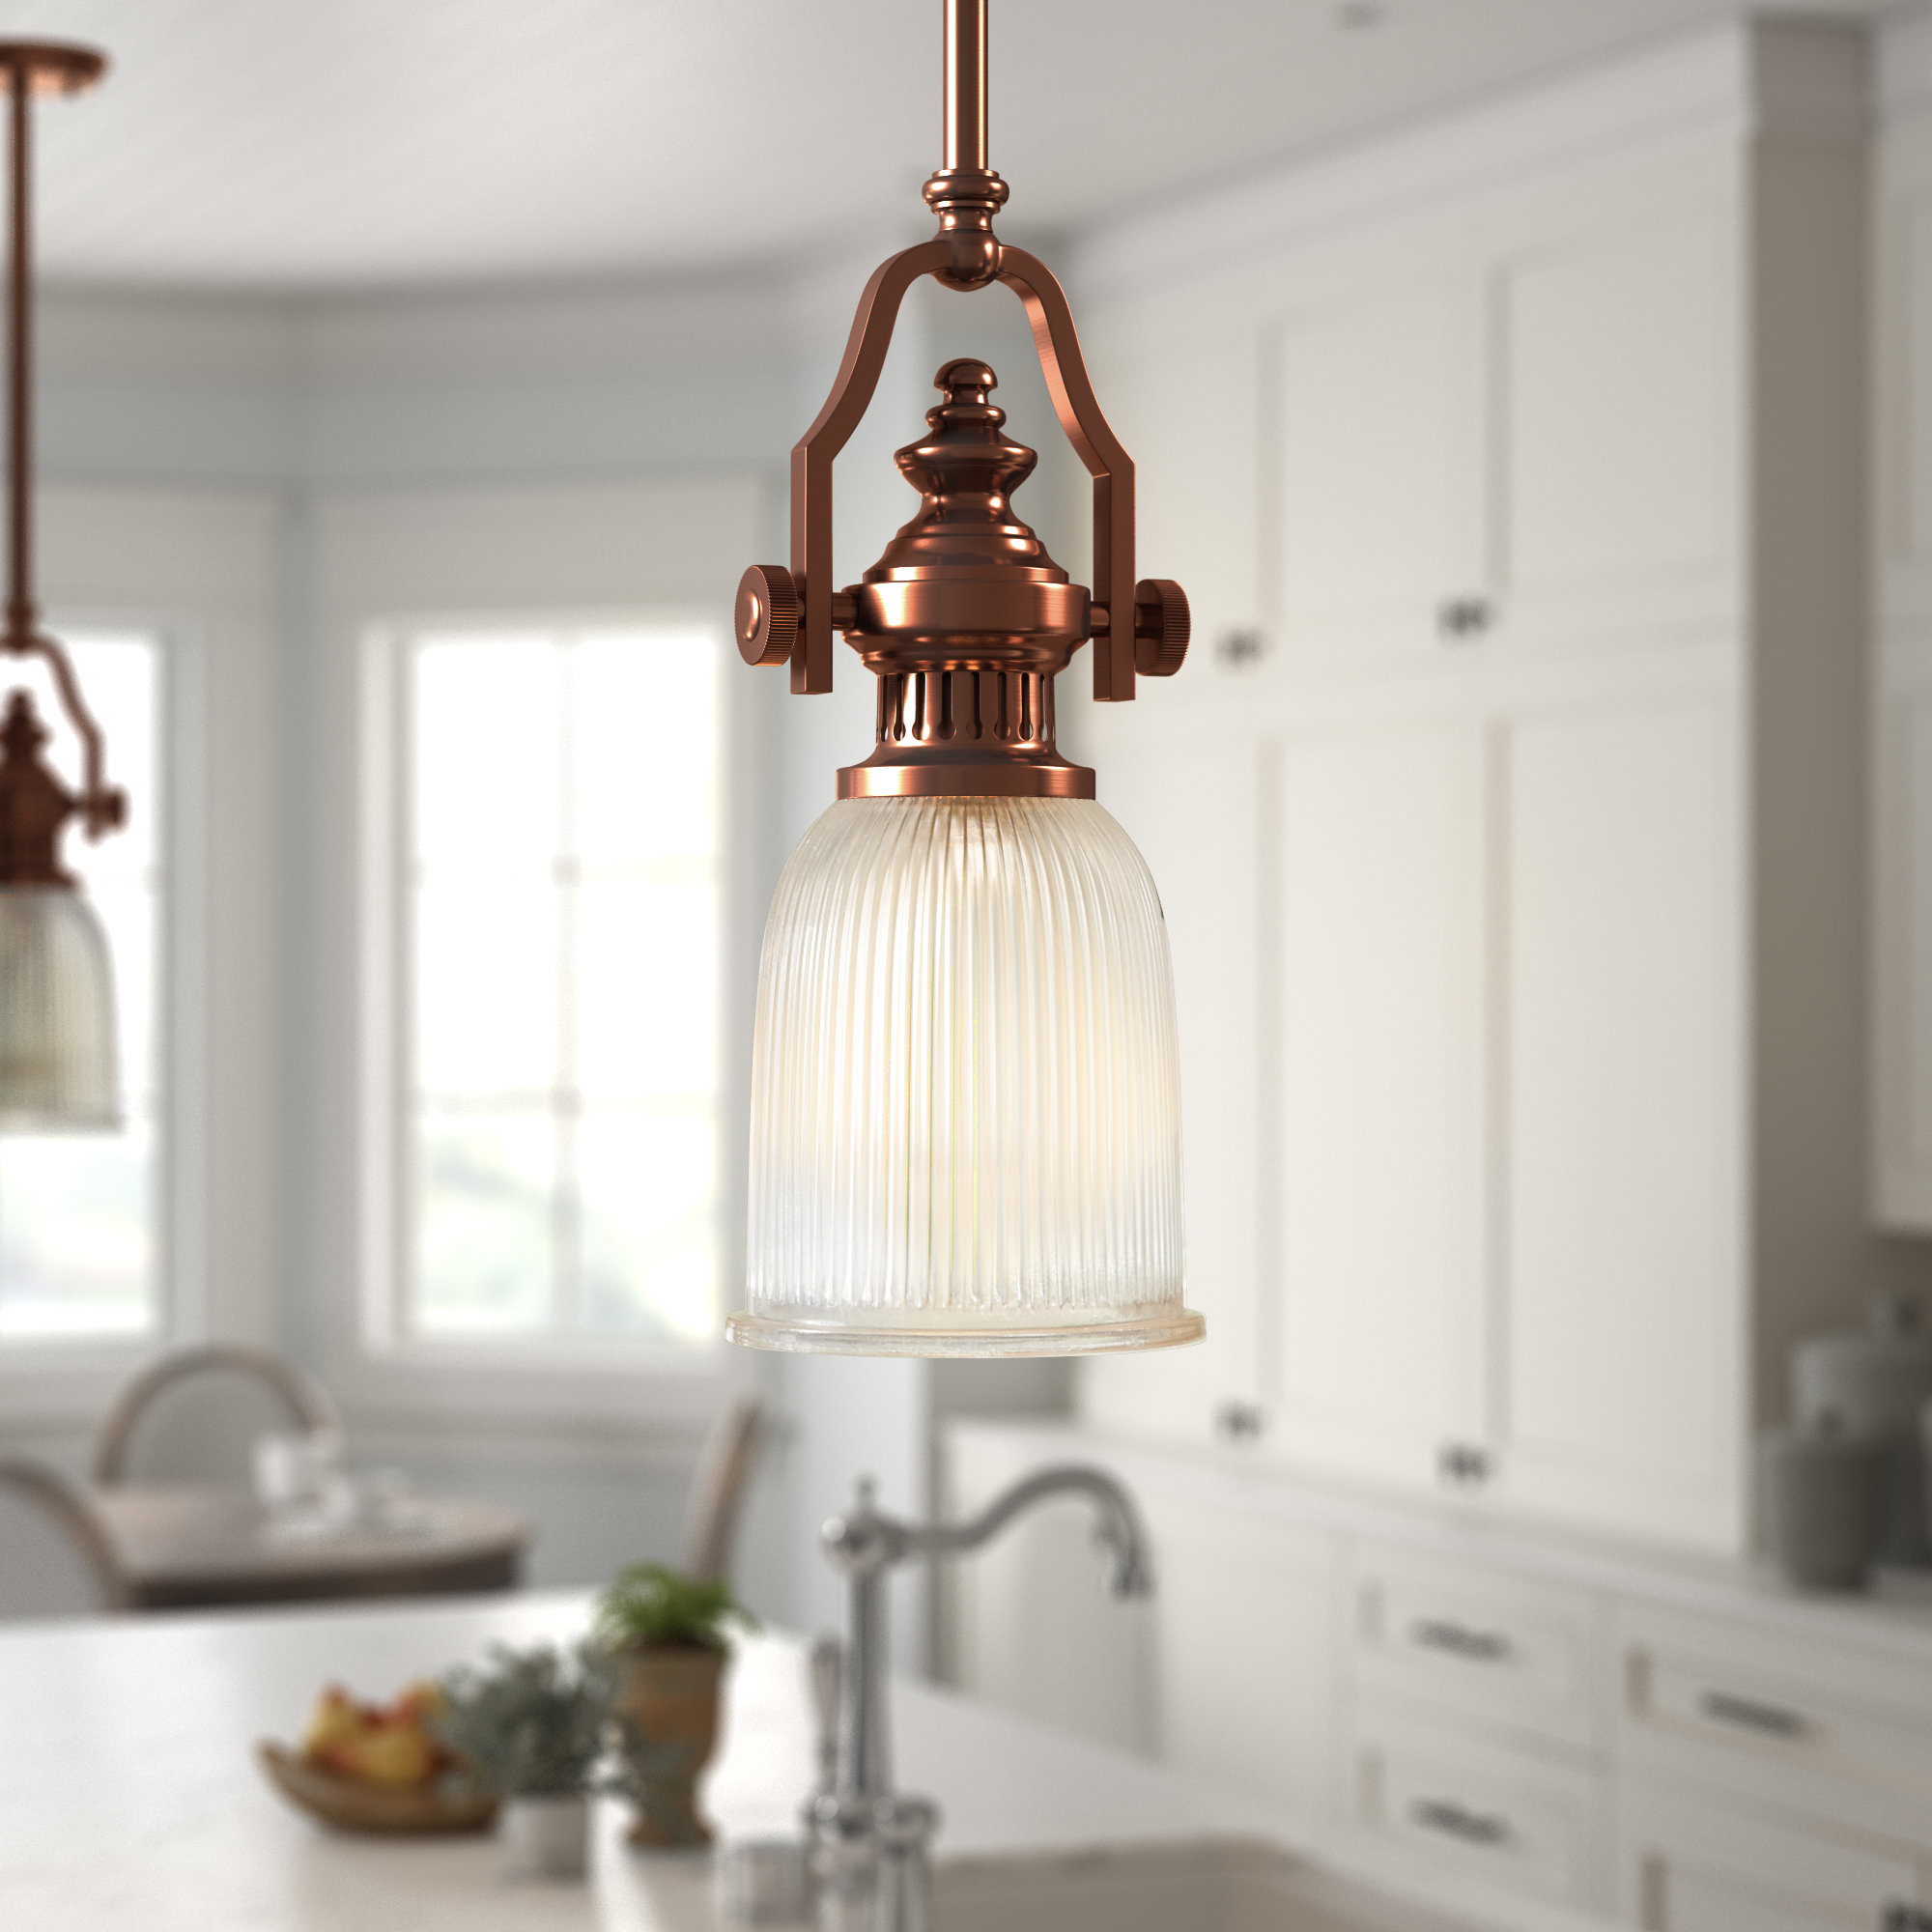 Erico 1 Light Single Bell Pendant Intended For Bodalla 1 Light Single Bell Pendants (View 24 of 30)